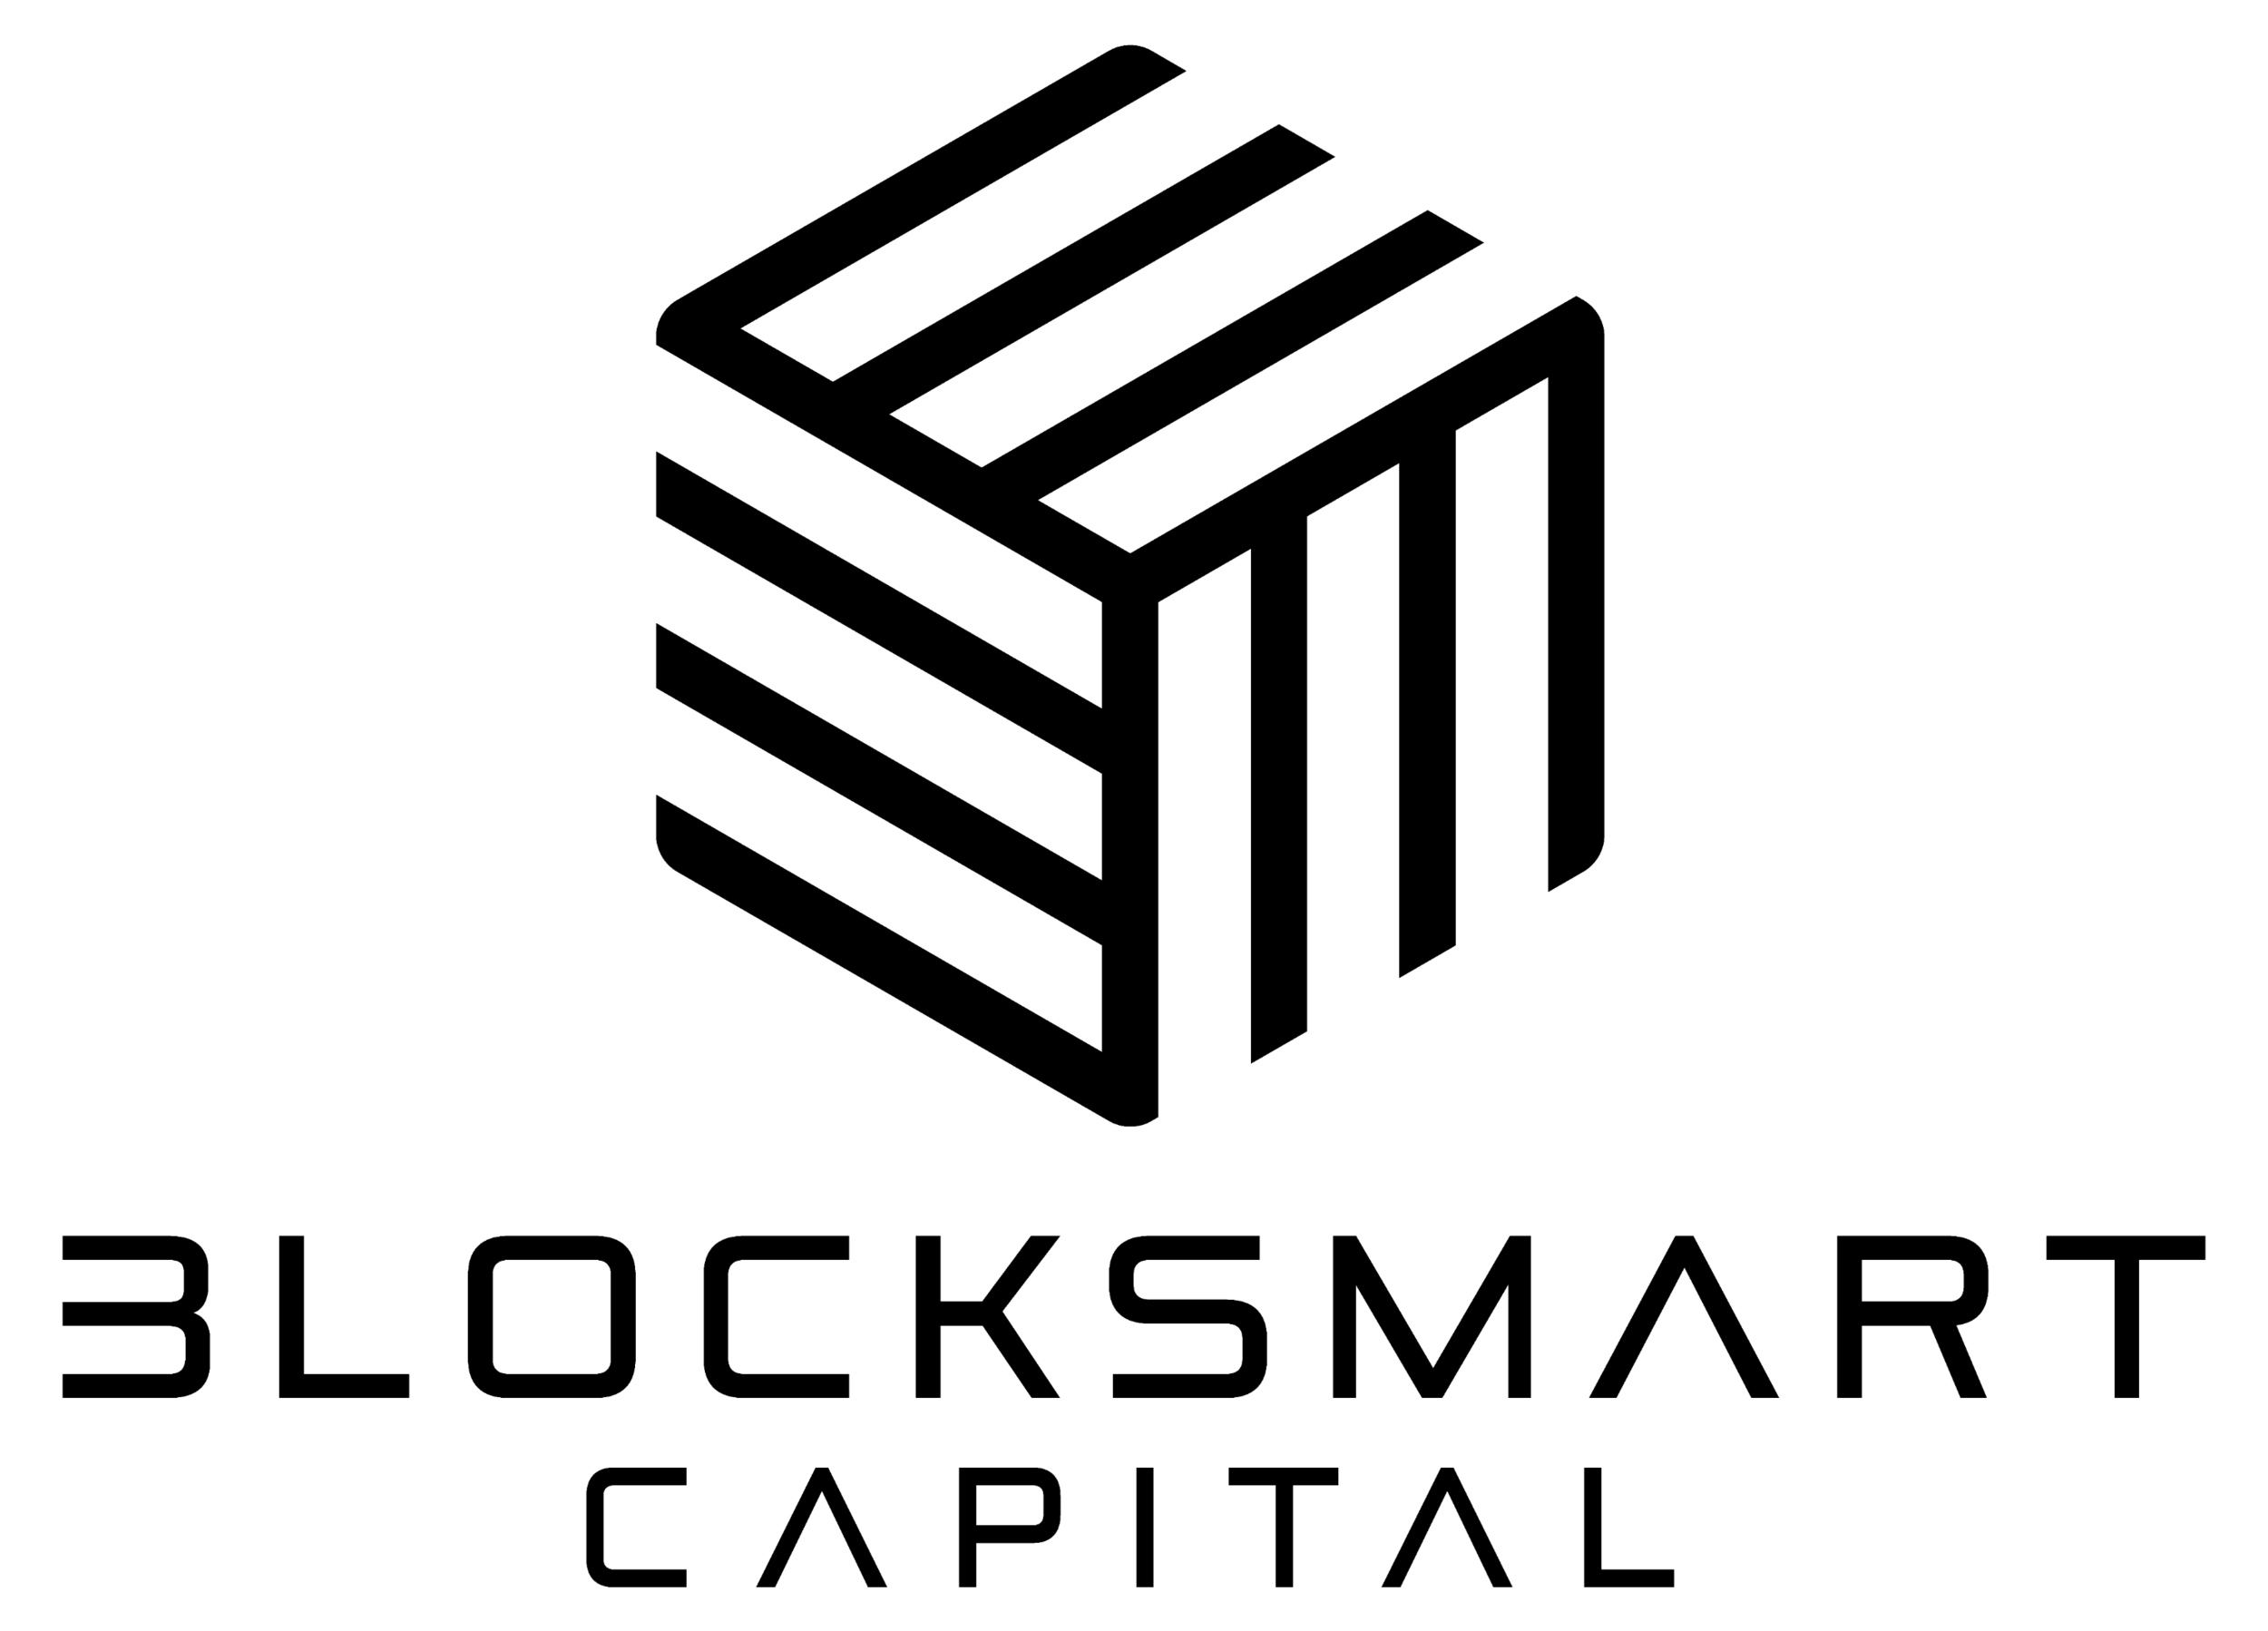 Transparent - Black Logo .png